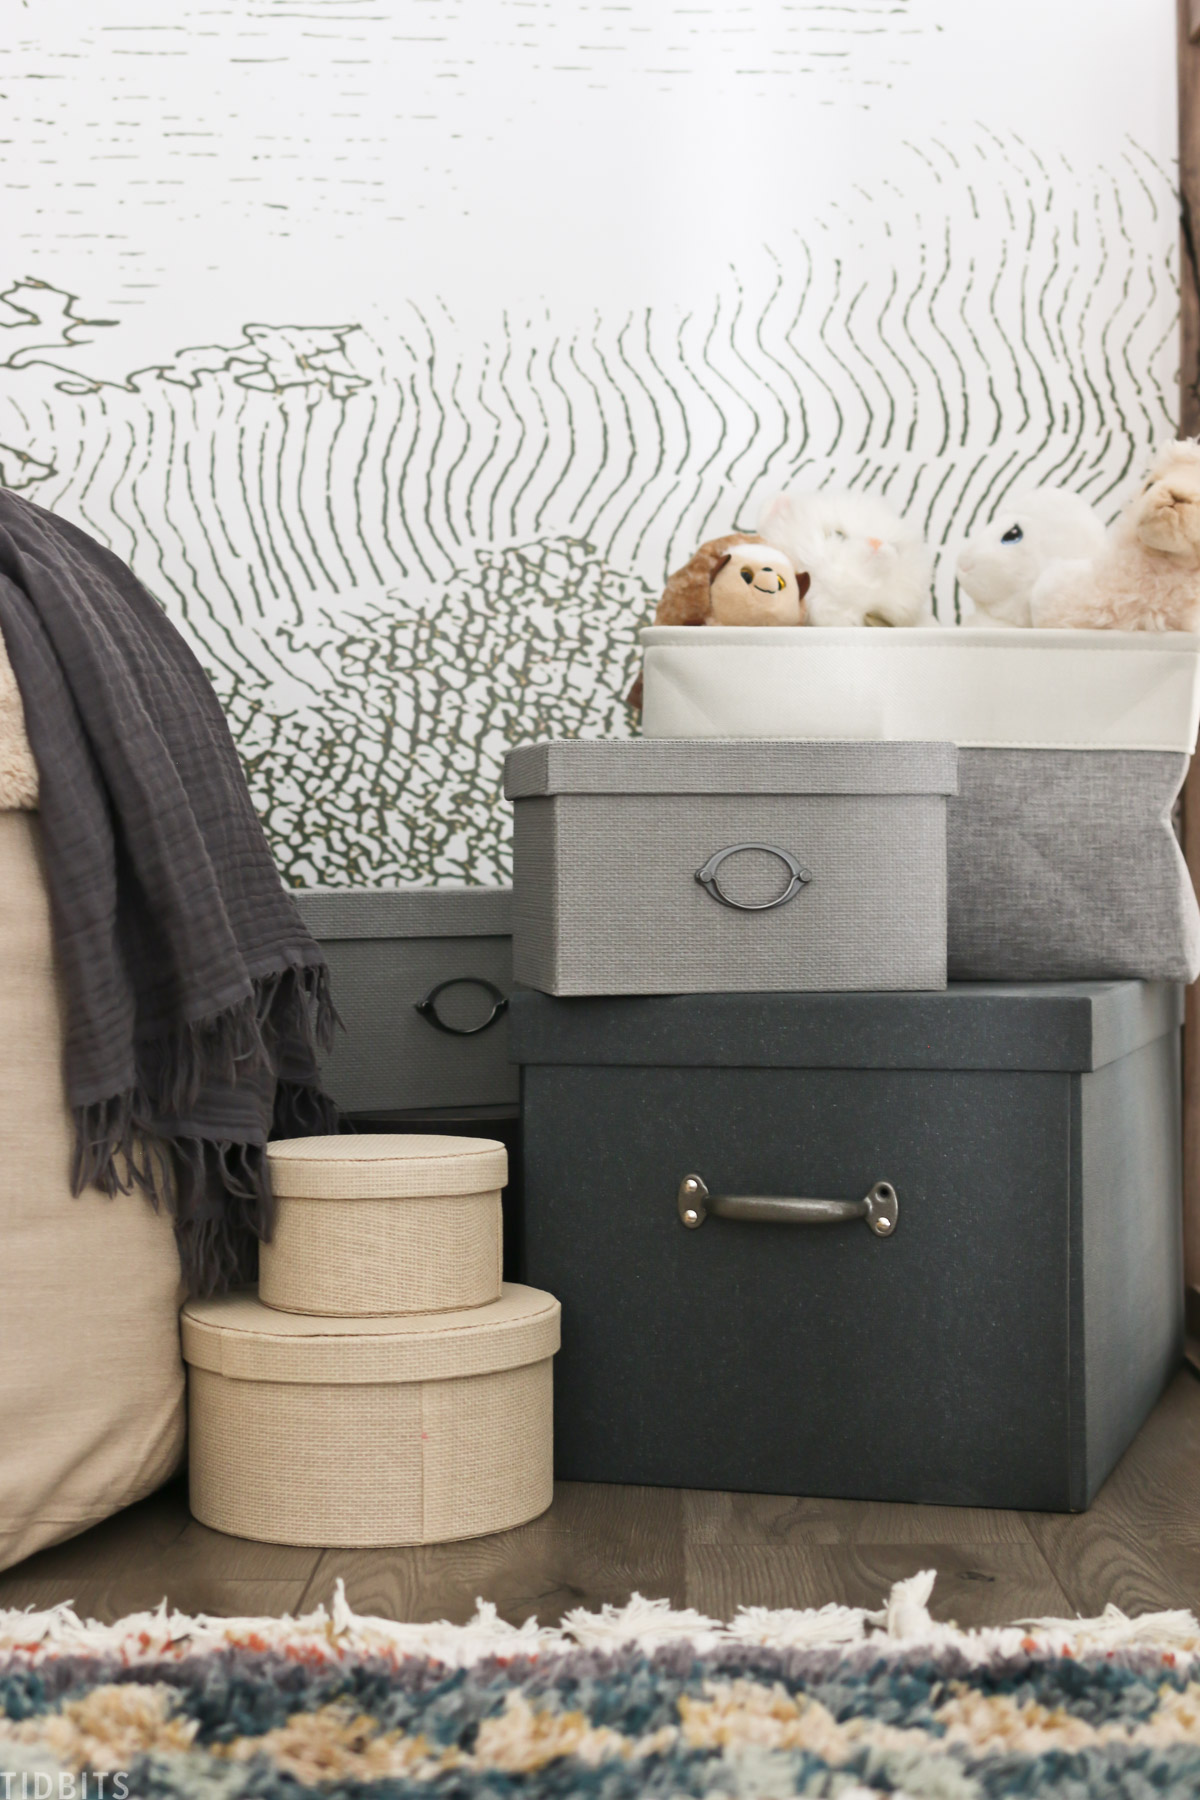 decorative storage baskets placed on the floor